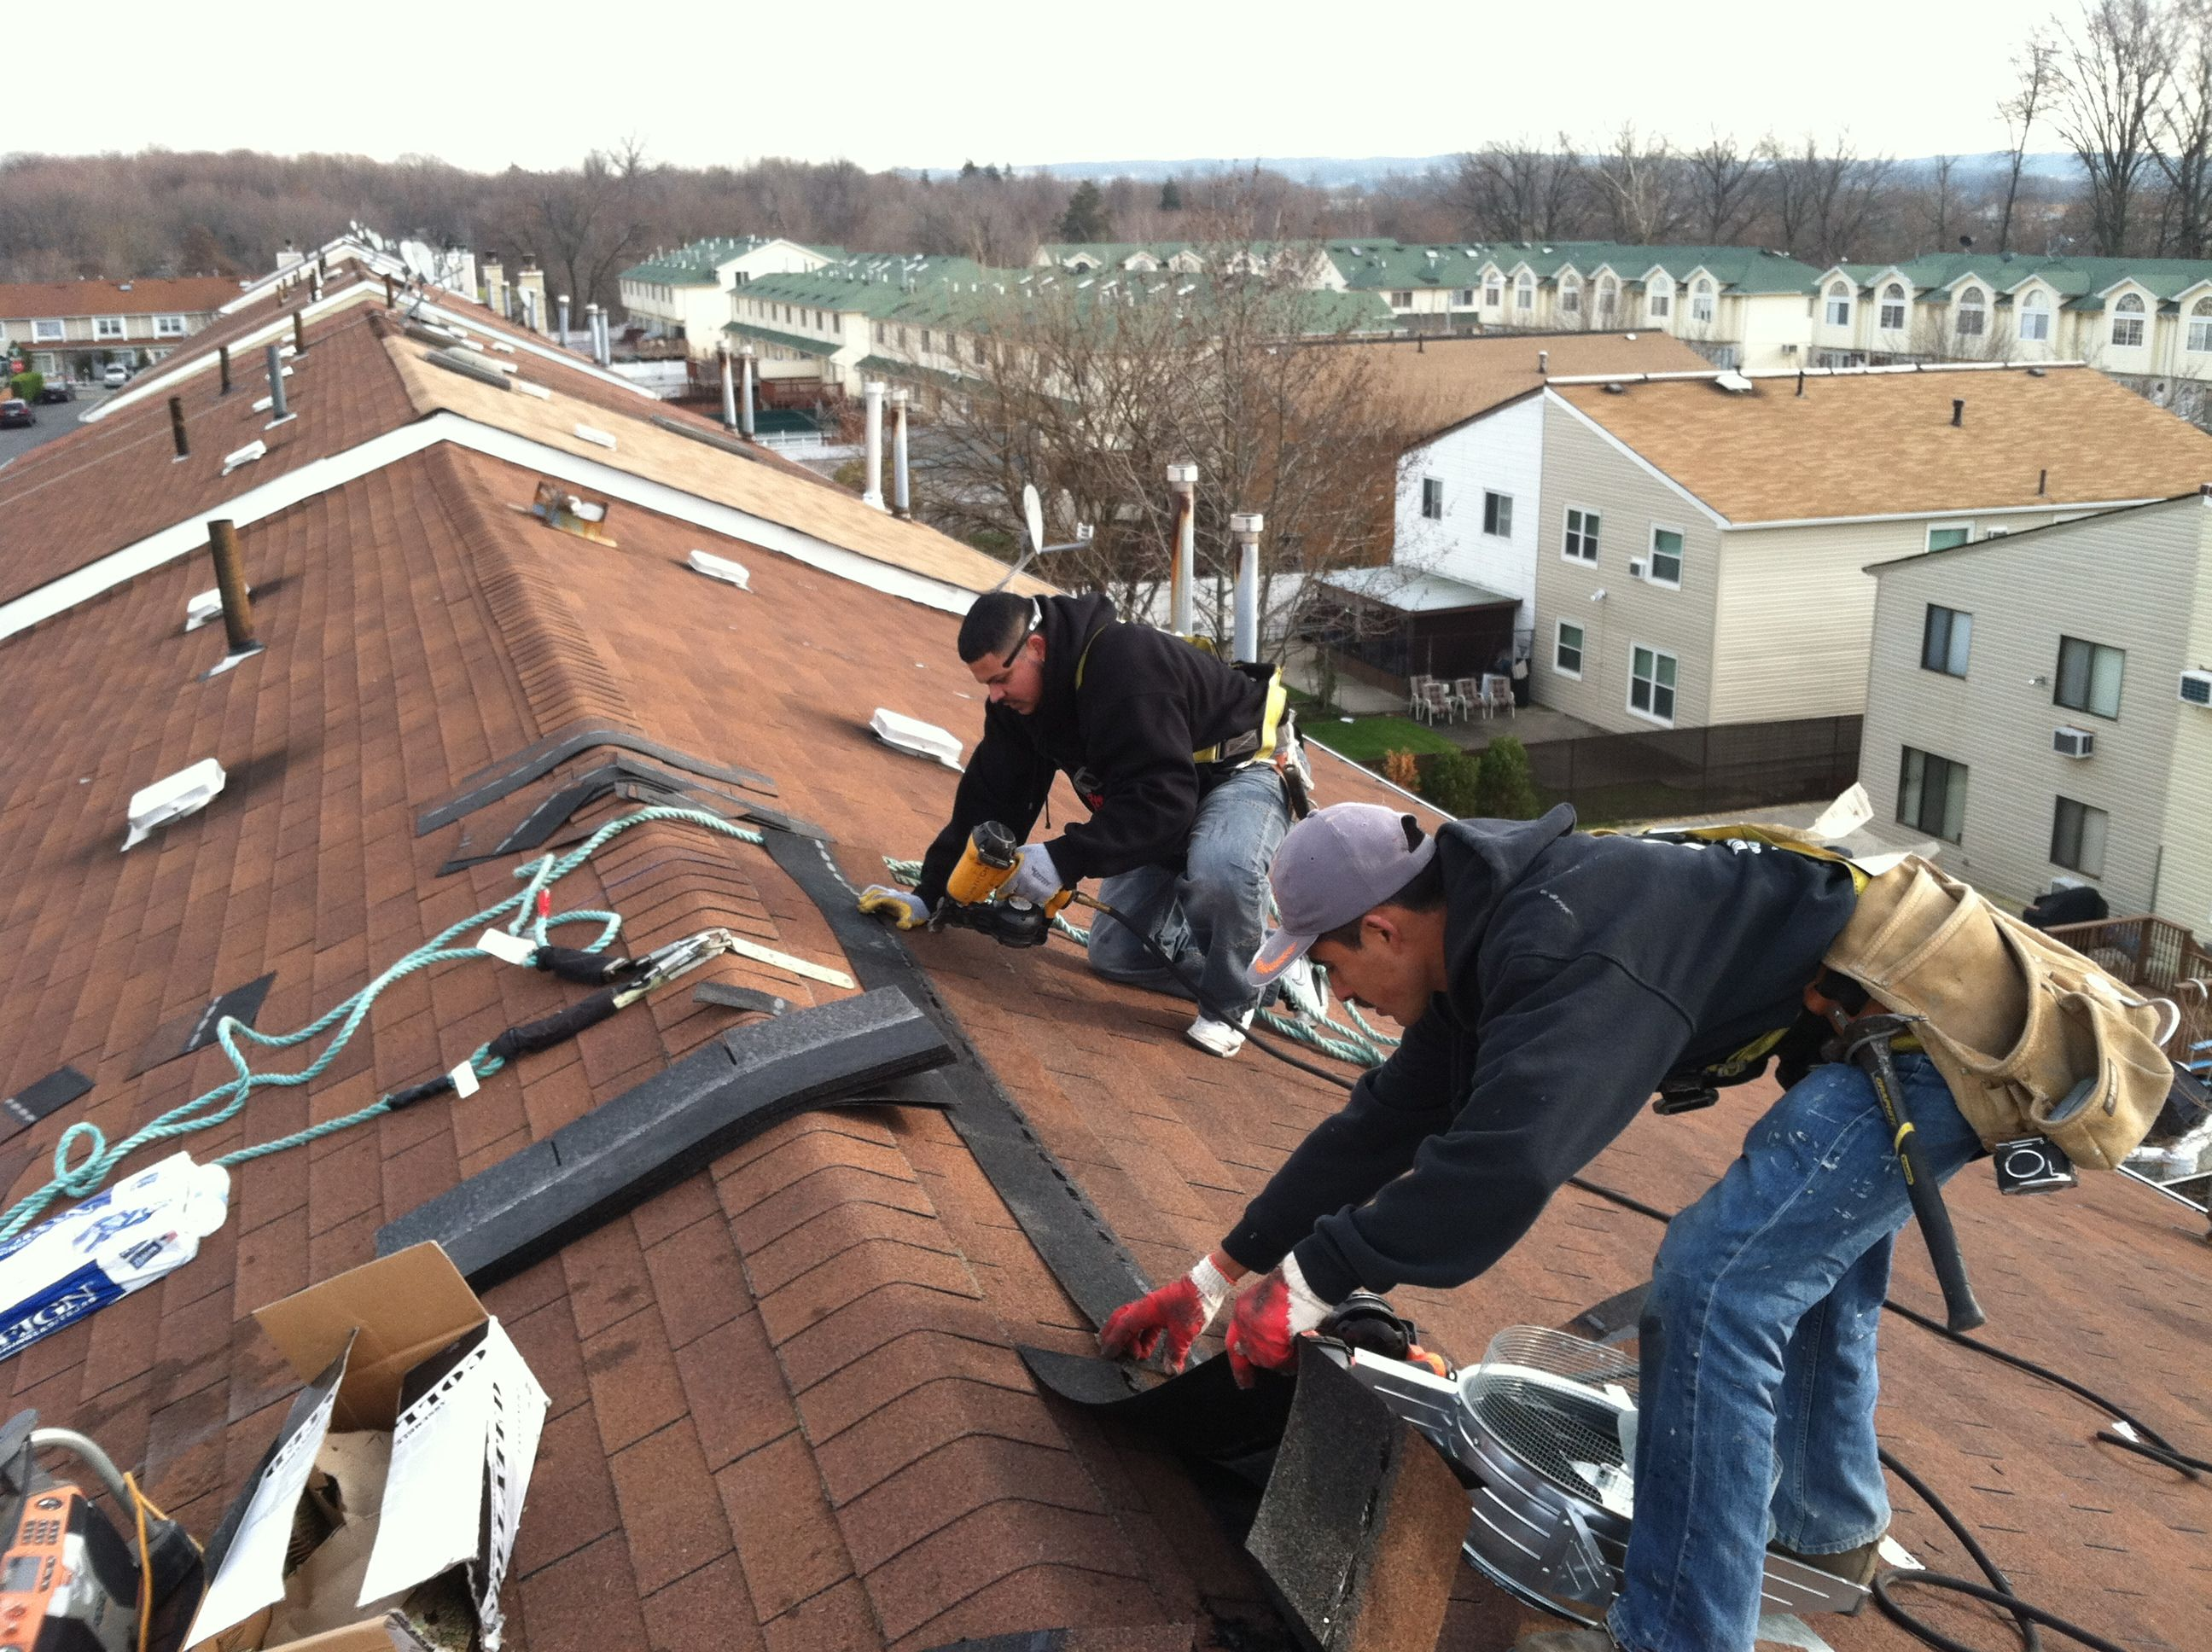 Commercial Roofing Contractors High Quality Services For An Affordable Cost Roofing Contractors Commercial Roofing Roof Repair